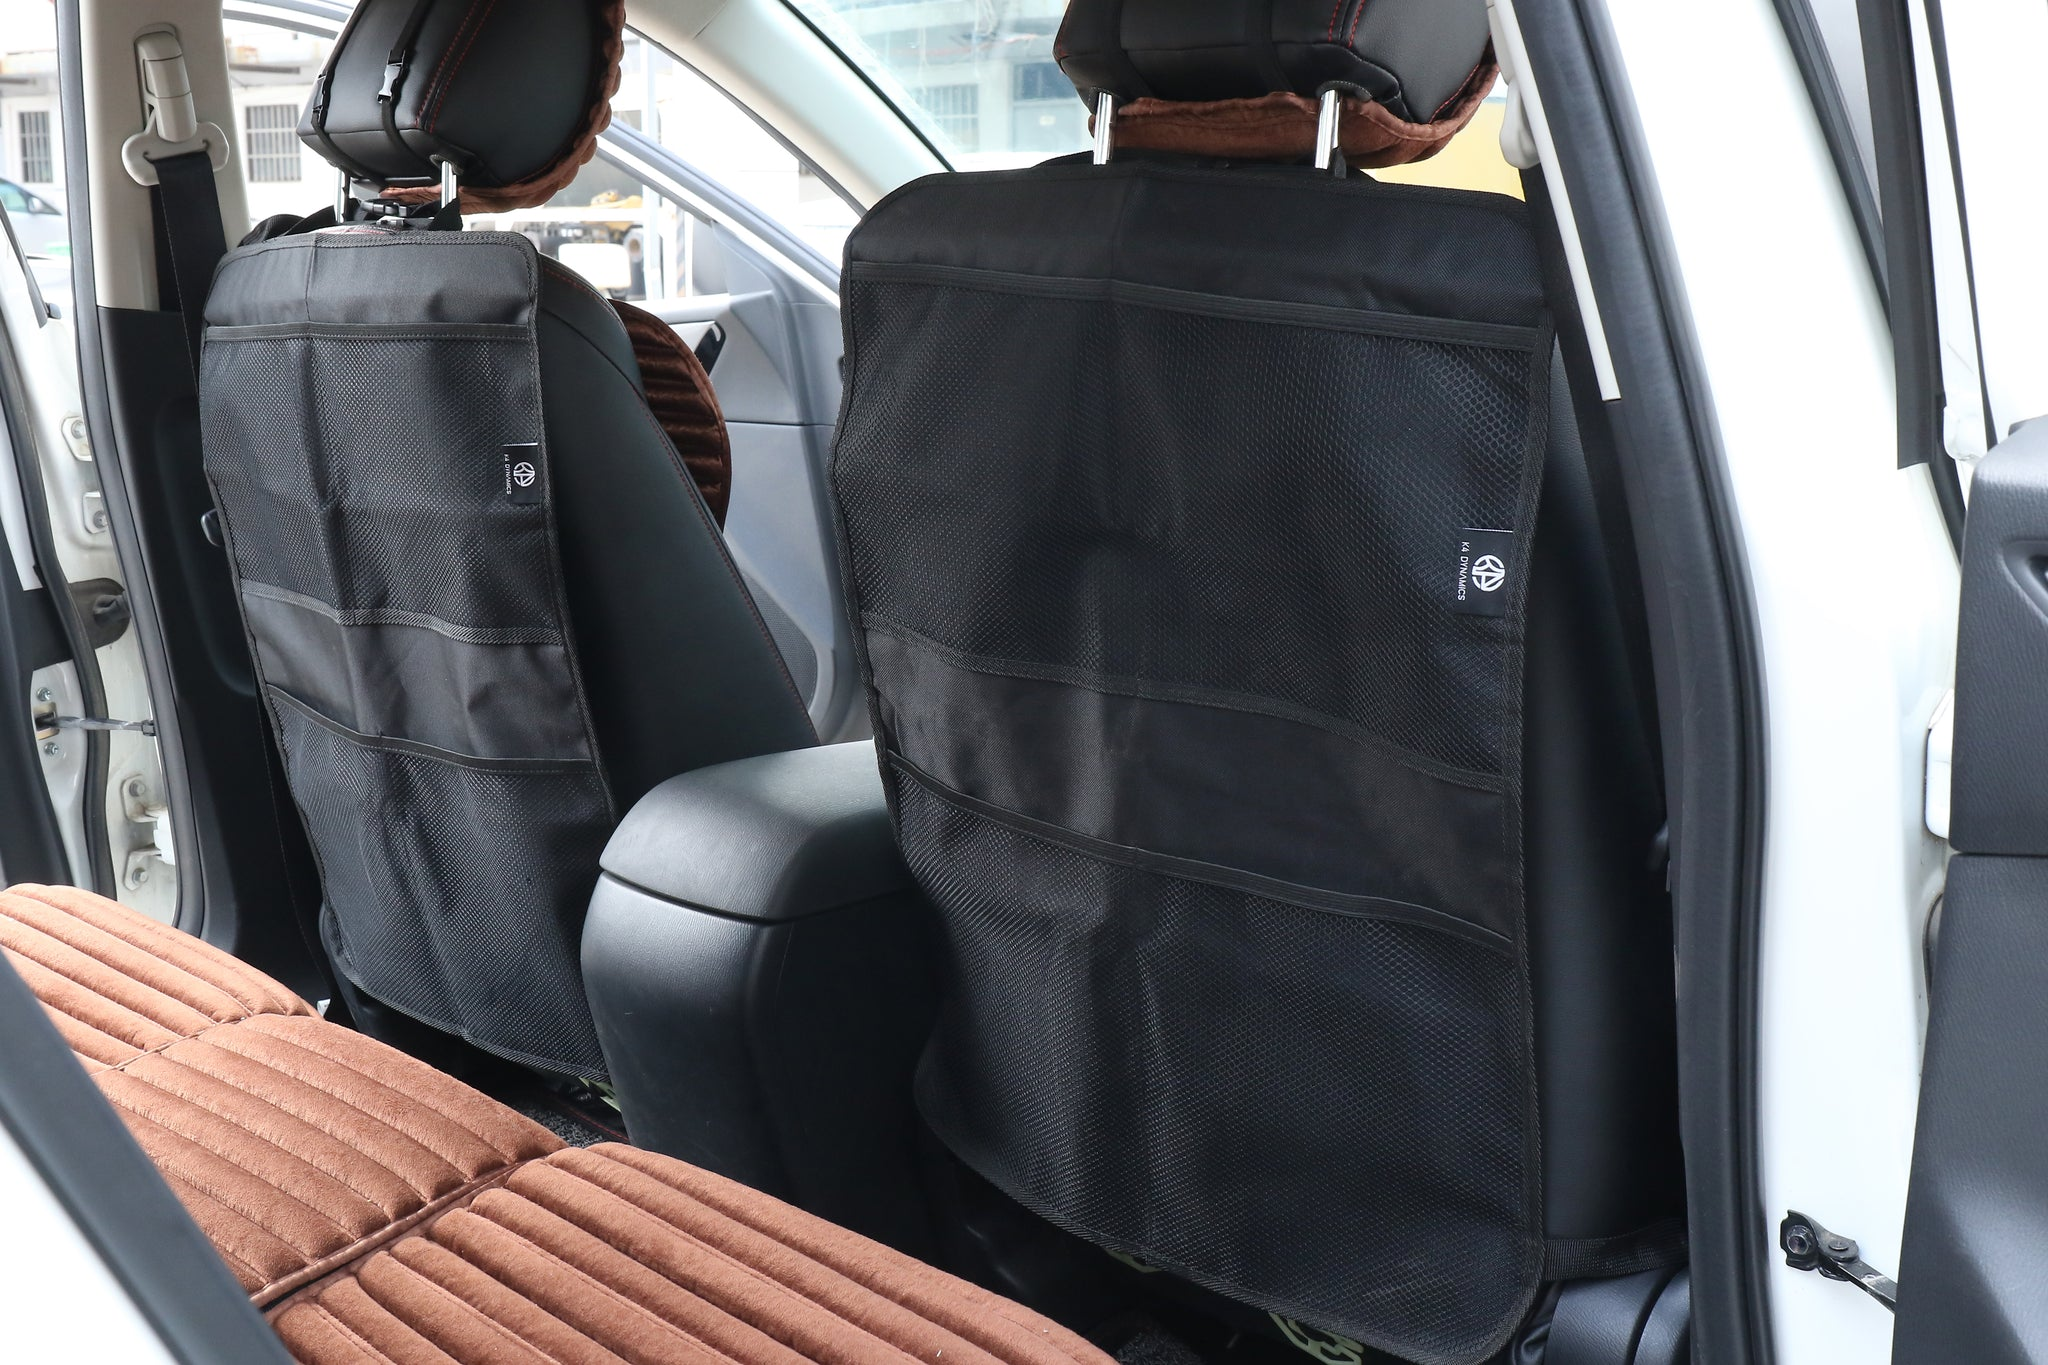 Backseat Car Organizer For Kids Save Your Seats From Little Feet